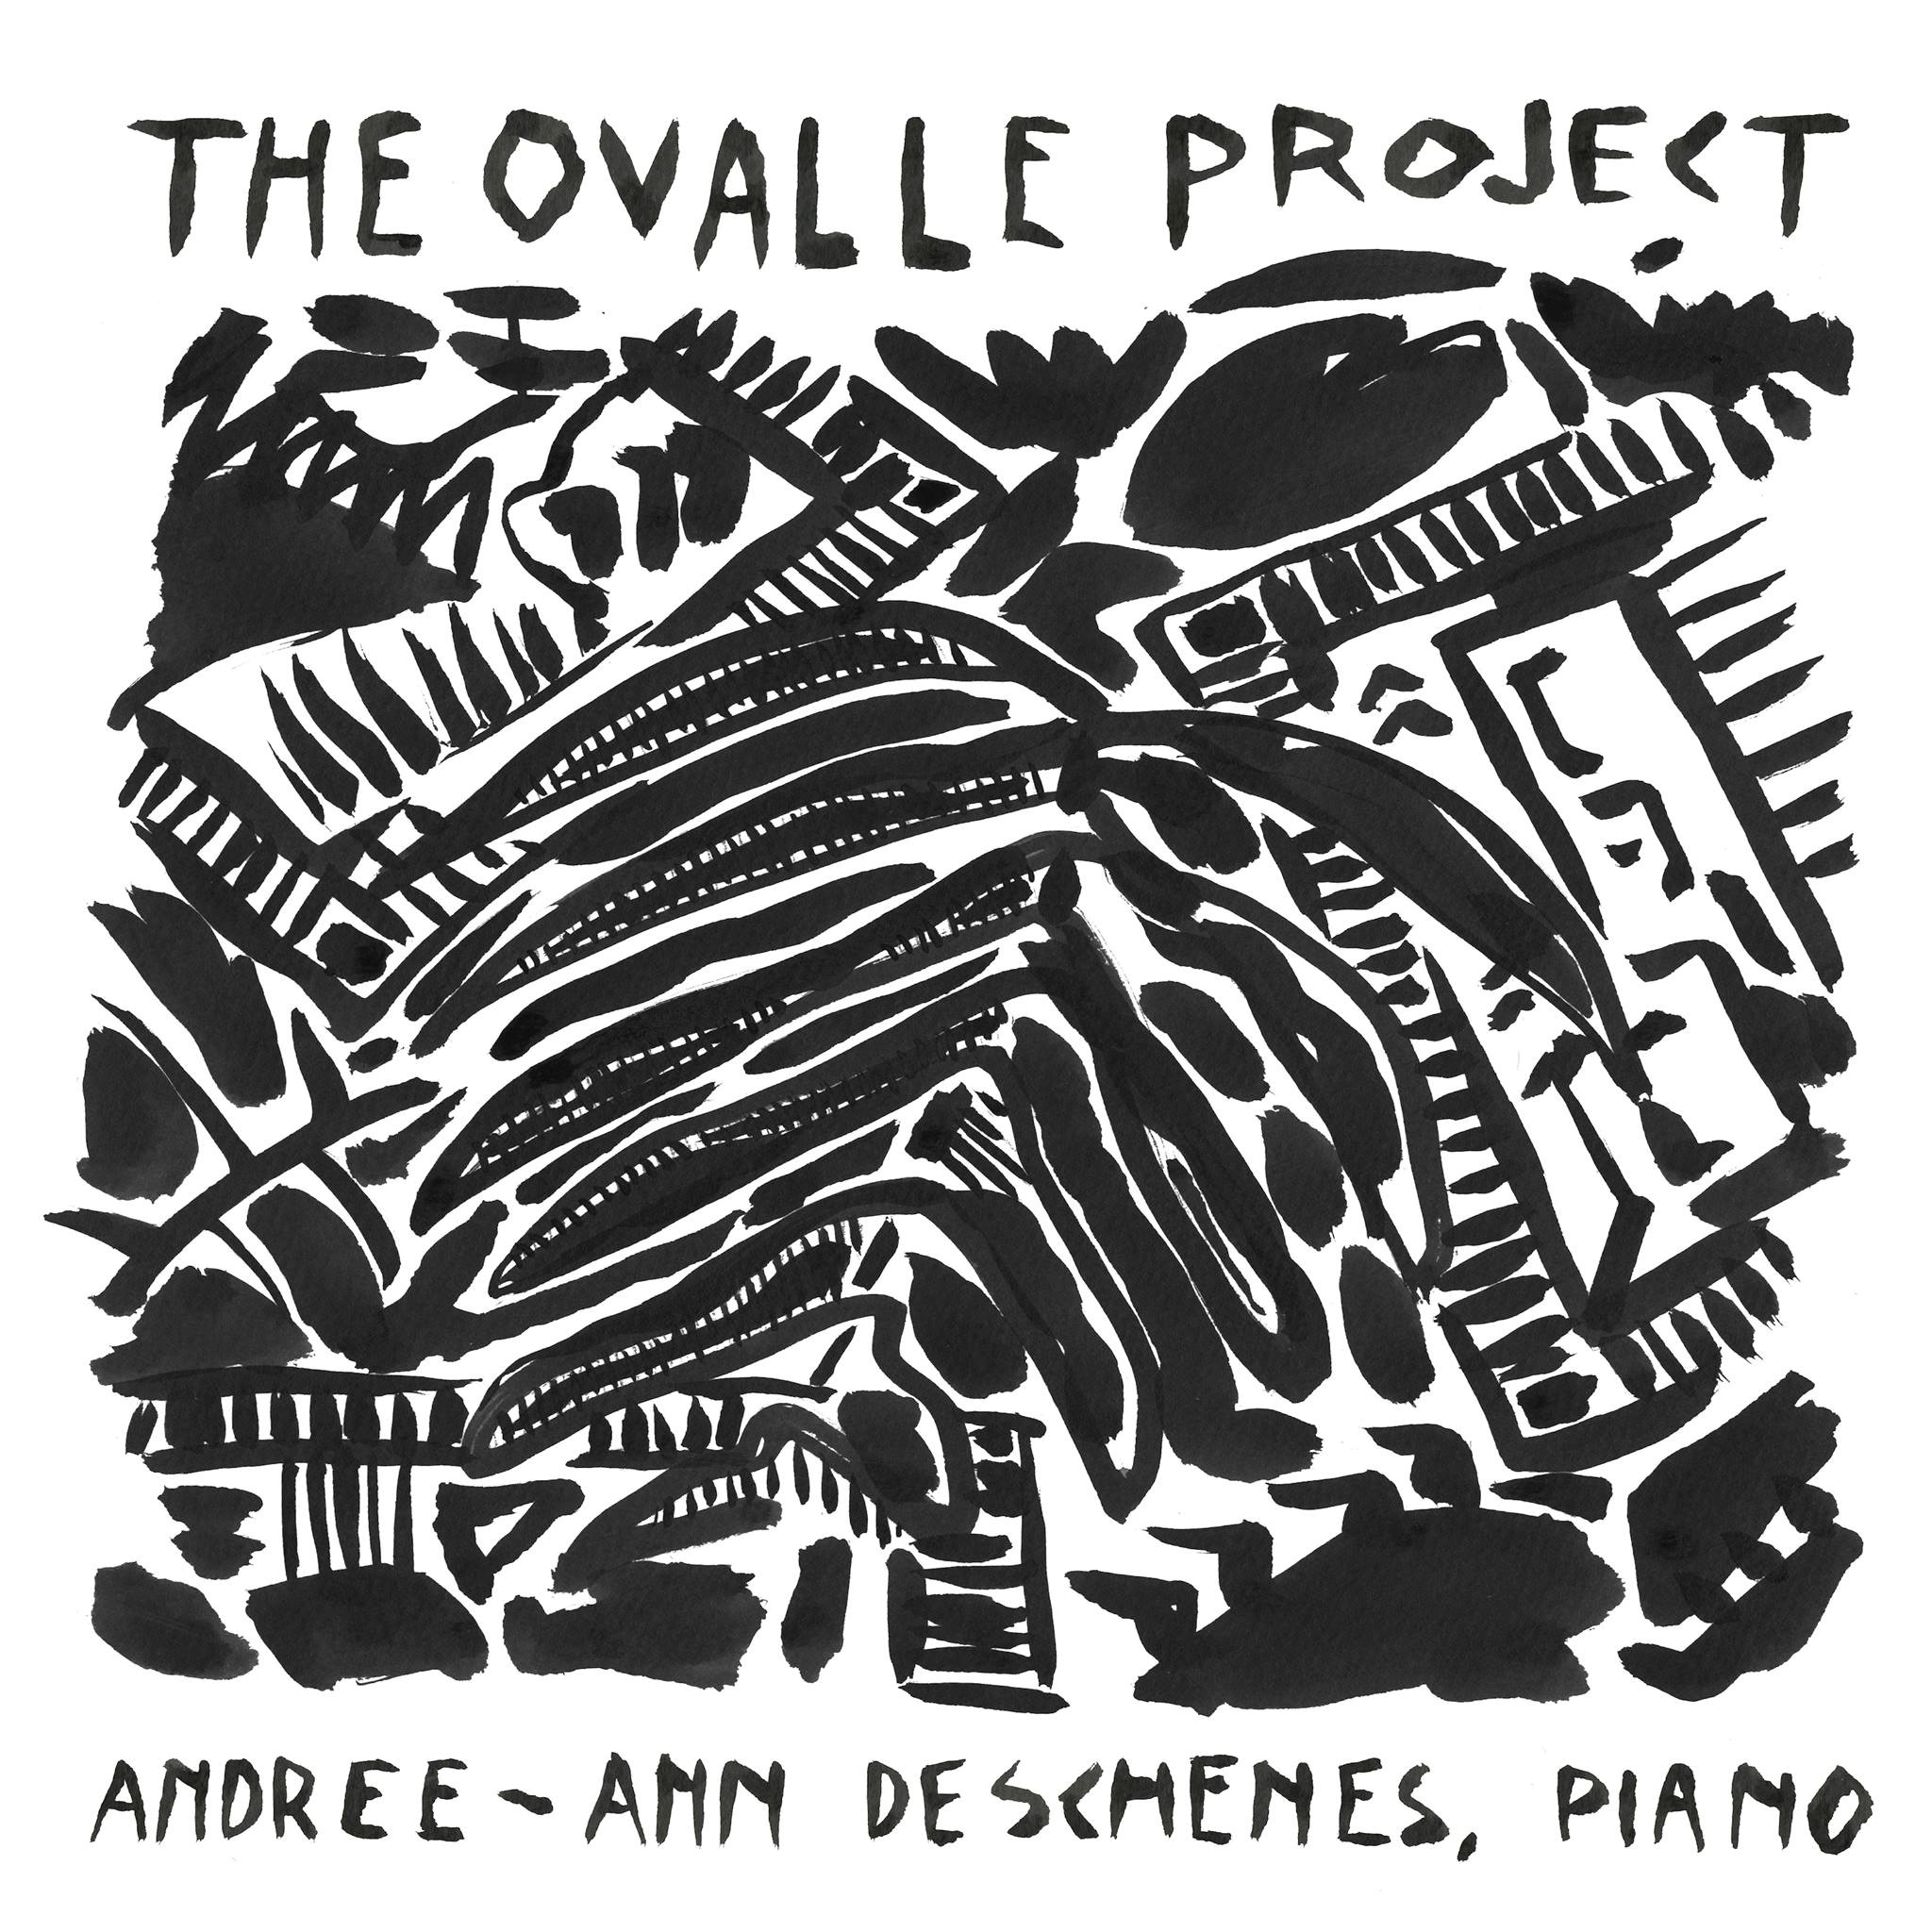 The Ovalle Project, Andree-Ann Deschenes